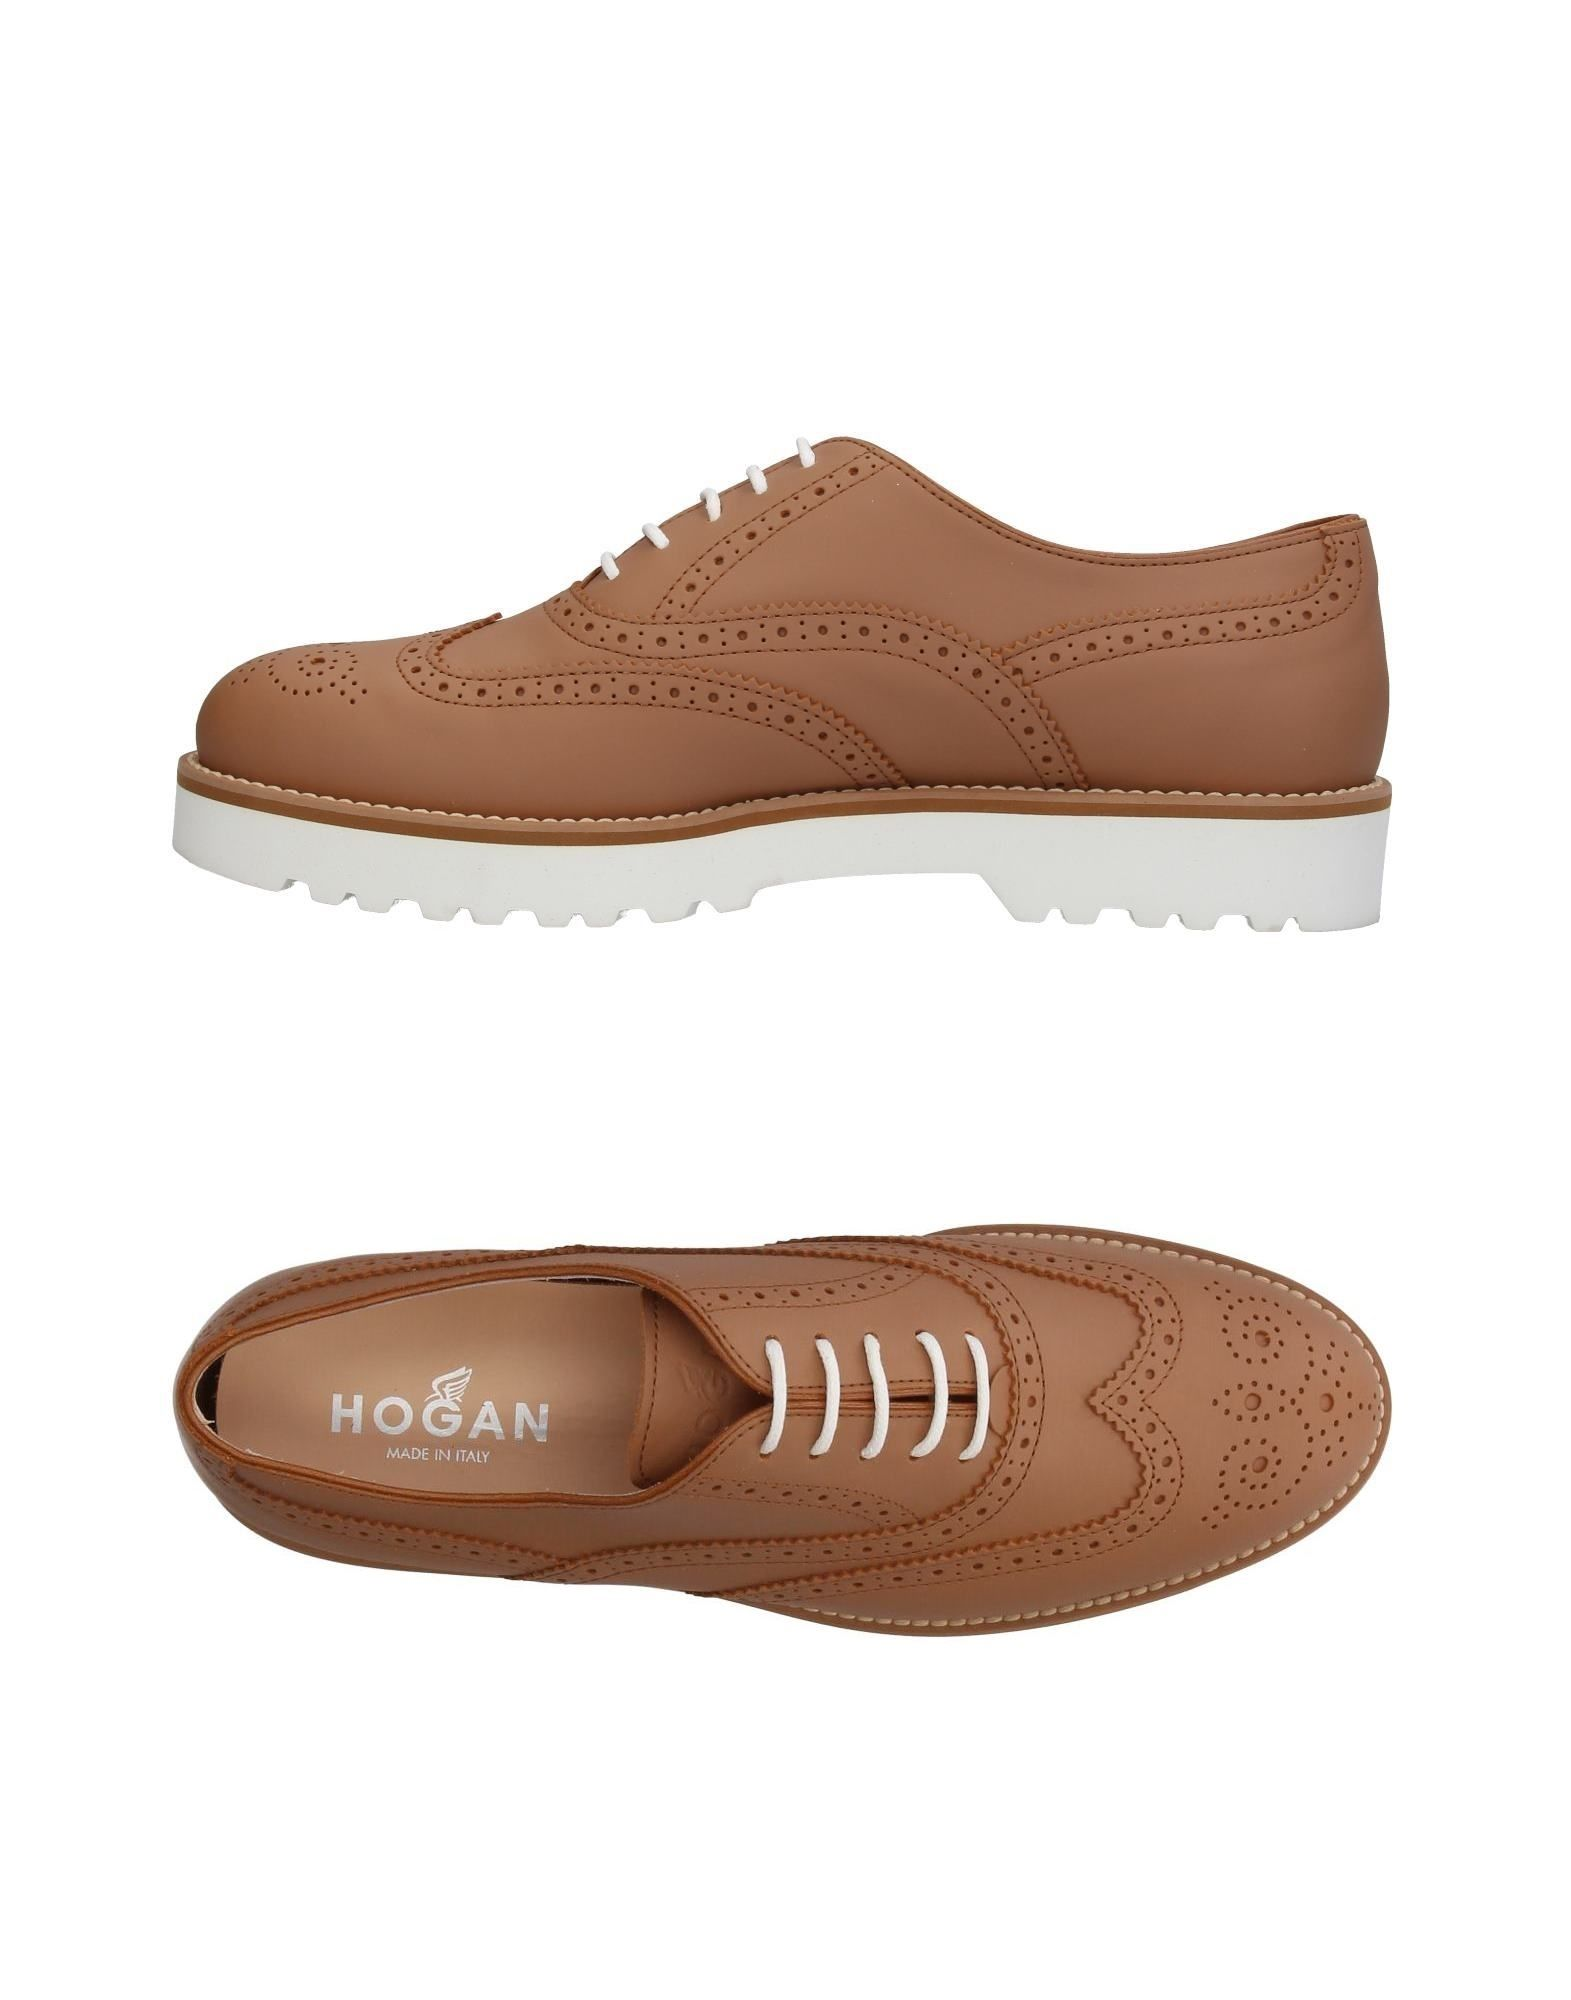 Stringate Hogan Donna - Acquista online su